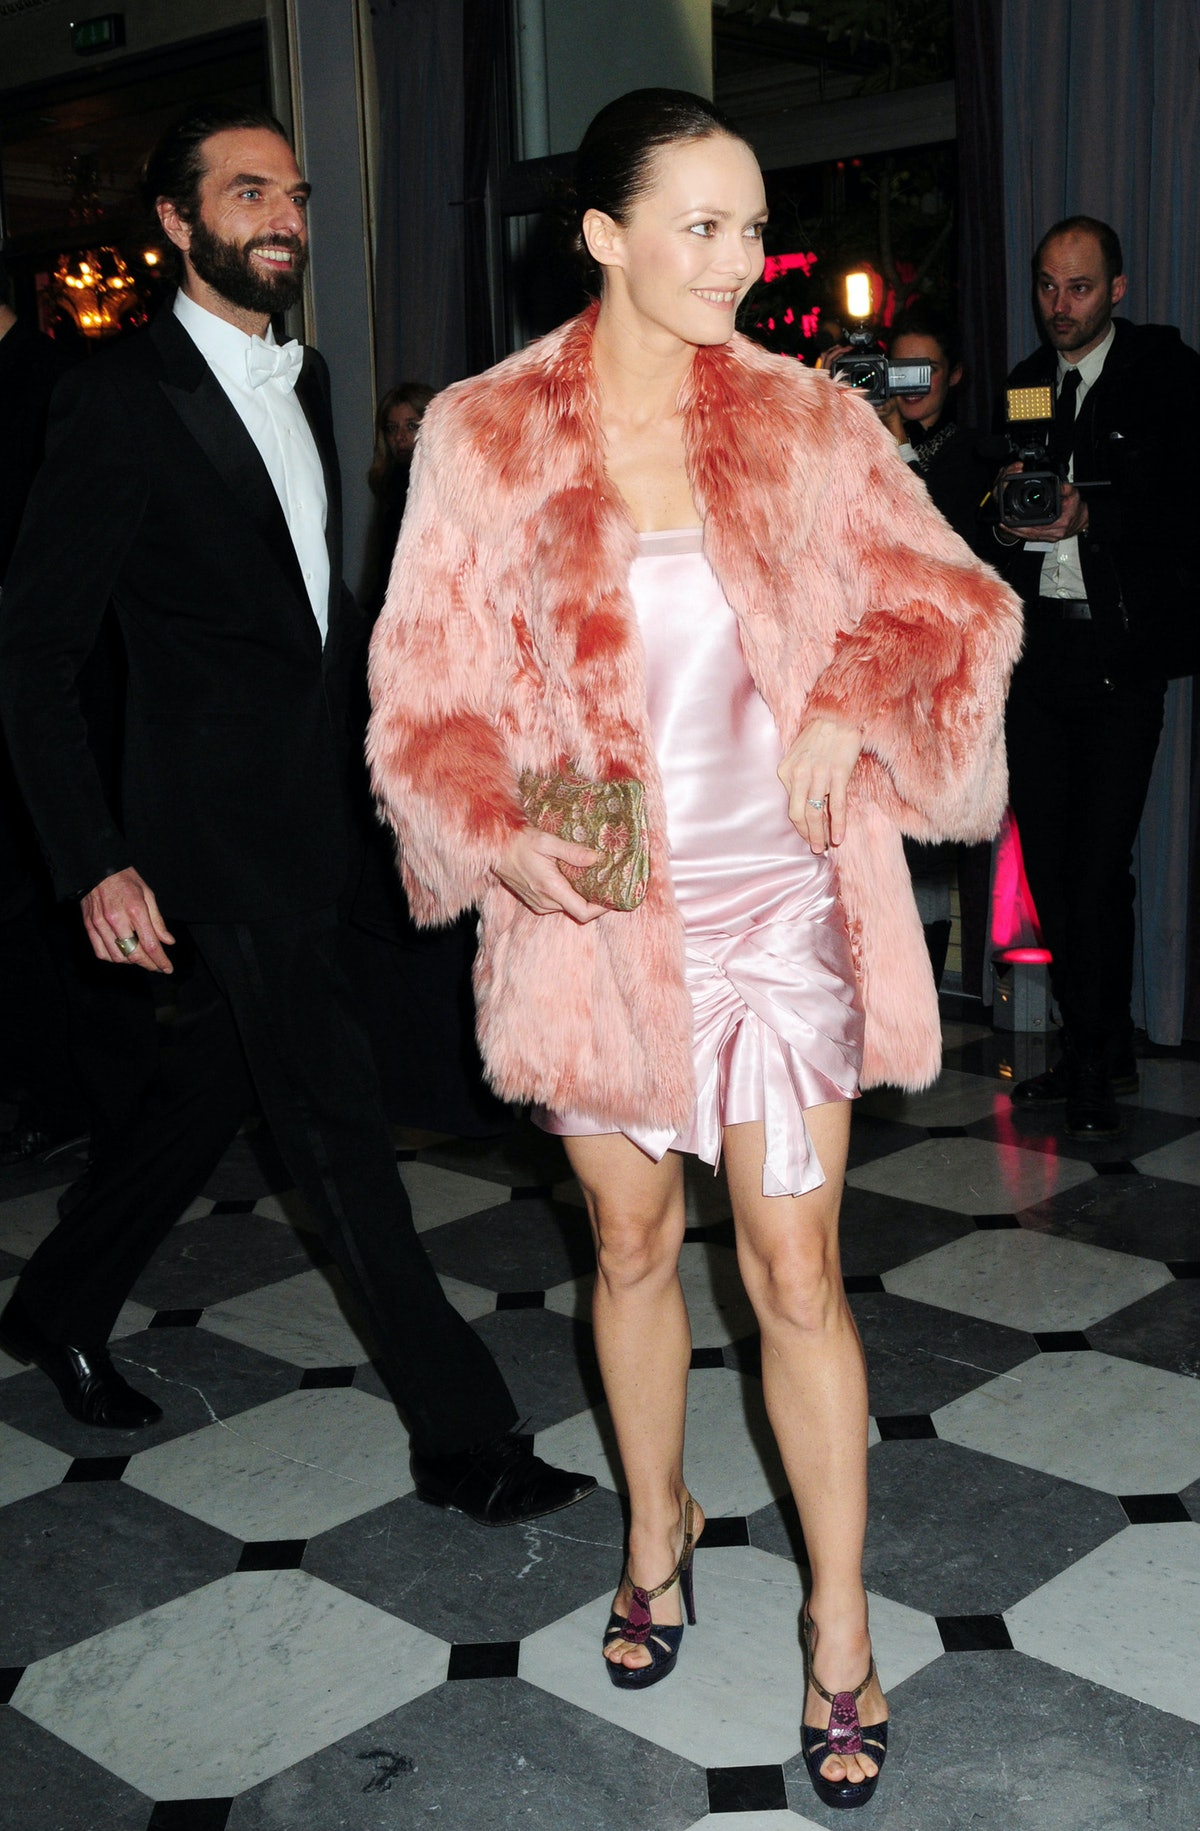 Fashion Dinner For AIDS In Paris - January 29, 2009